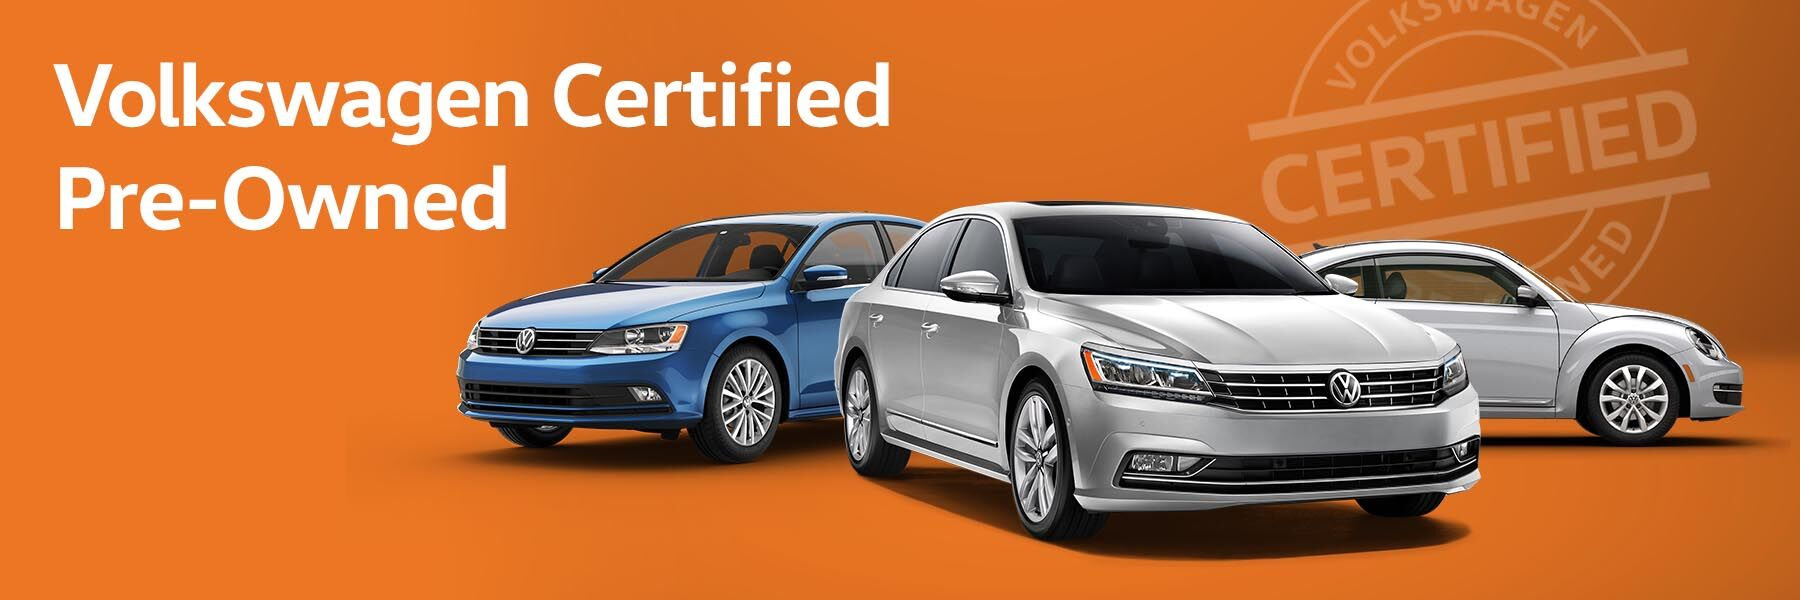 Volkswagen Certified Pre-Owned in Chattanooga, TN